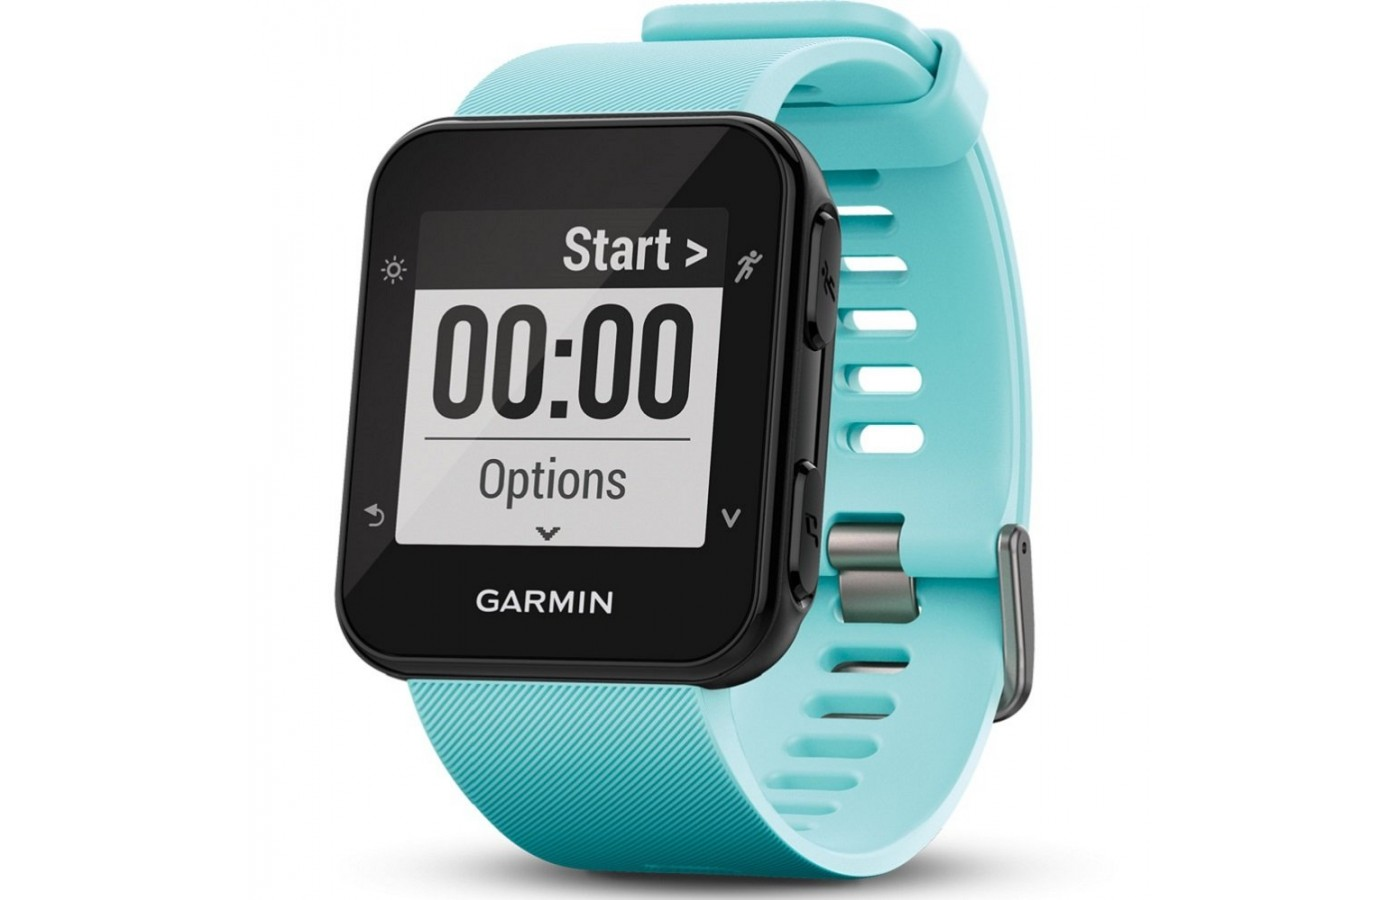 The basic features are tremendous for runners who have begun to track fitness goals.